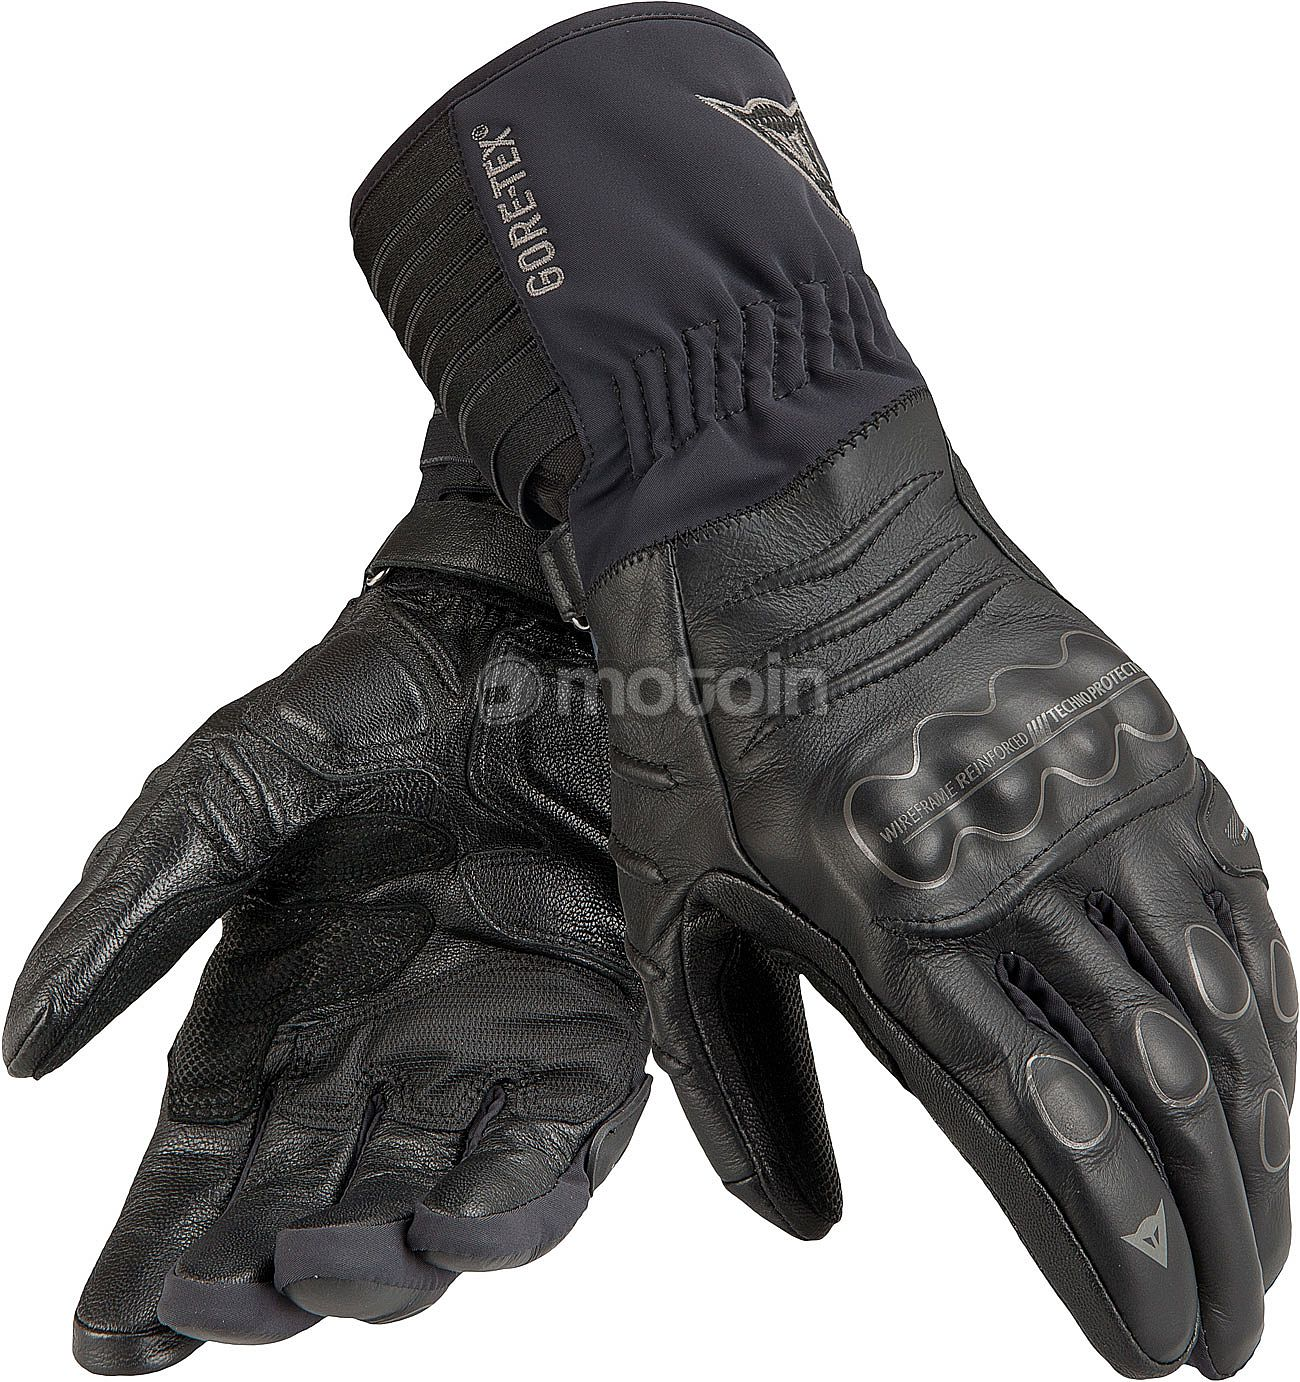 dainese ergotour x trafit handschuhe gore tex. Black Bedroom Furniture Sets. Home Design Ideas